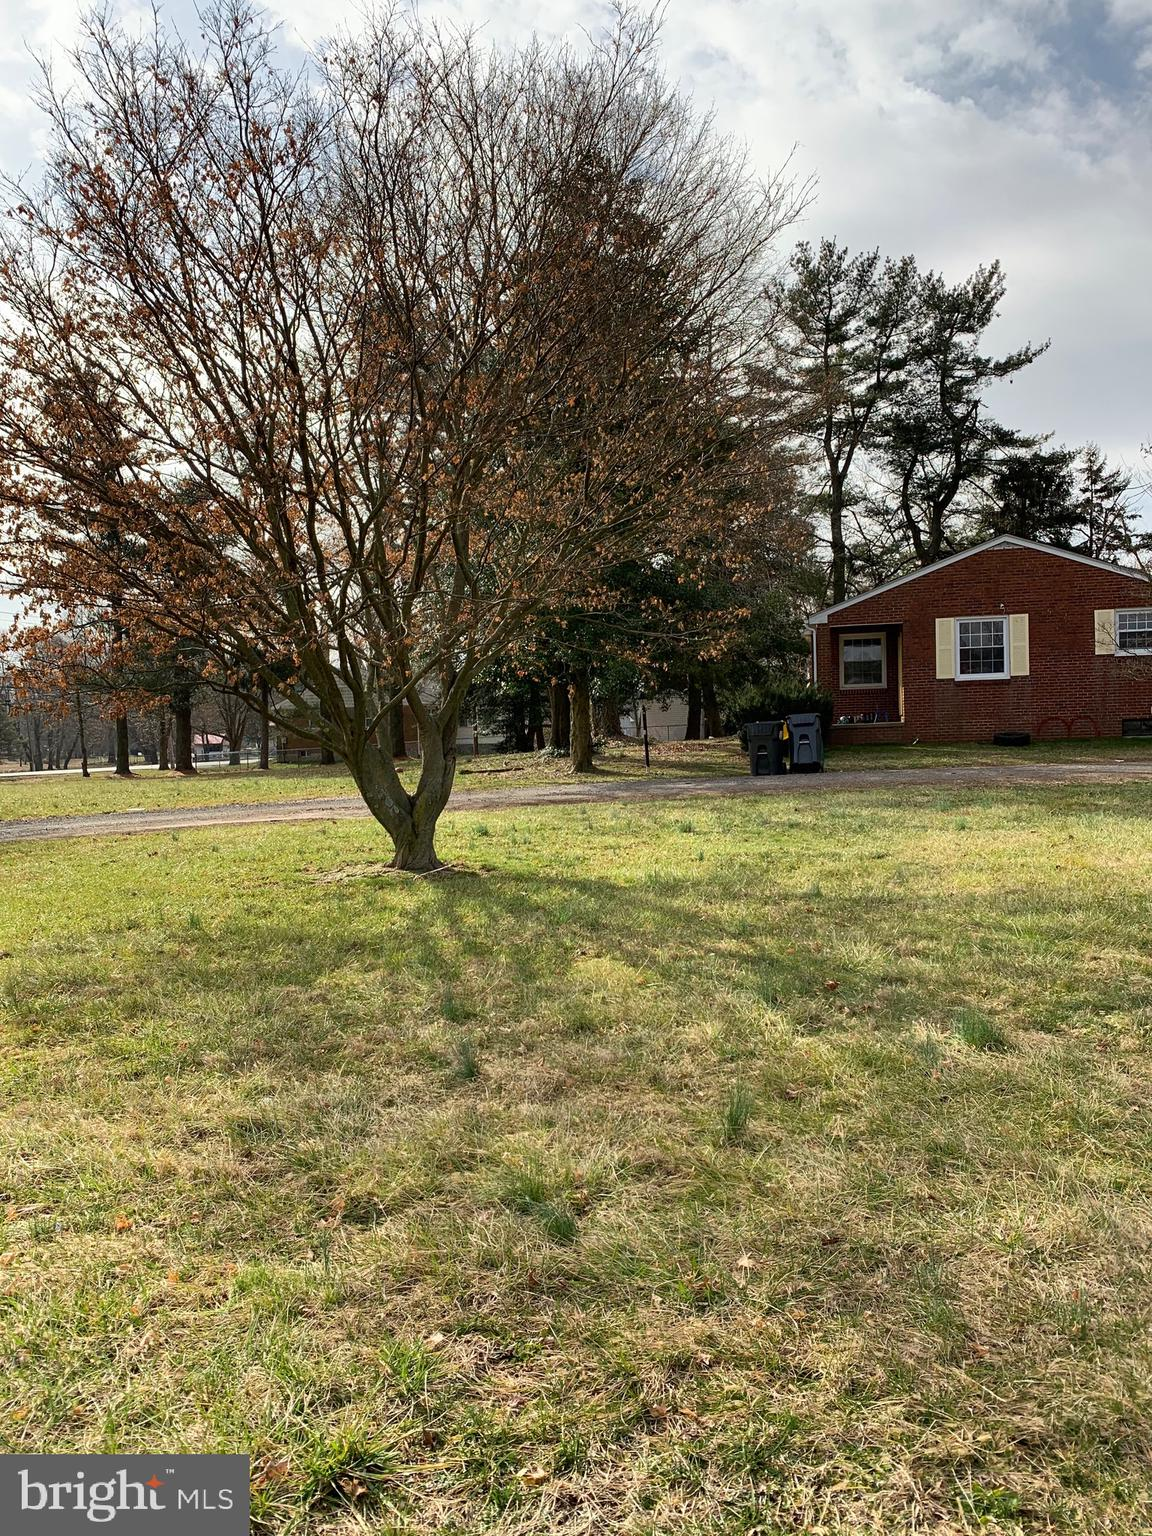 This 3 bedroom one bath ranch home sits on a 1.0900 acre lot along with 3 additional tax parcels totaling 6 acres of land .  The home that sits on the land has central air, oil heat that may be converted to heat pump, public water and septic system.  The home is  brick and situated nicely on the lot.  Being sold all together on one blanket deed. However, new a owner can  separate the deeds, build or use your creativity.  Bring  your offer as soon as possible.  Currently tenant occupied, but not a problem.